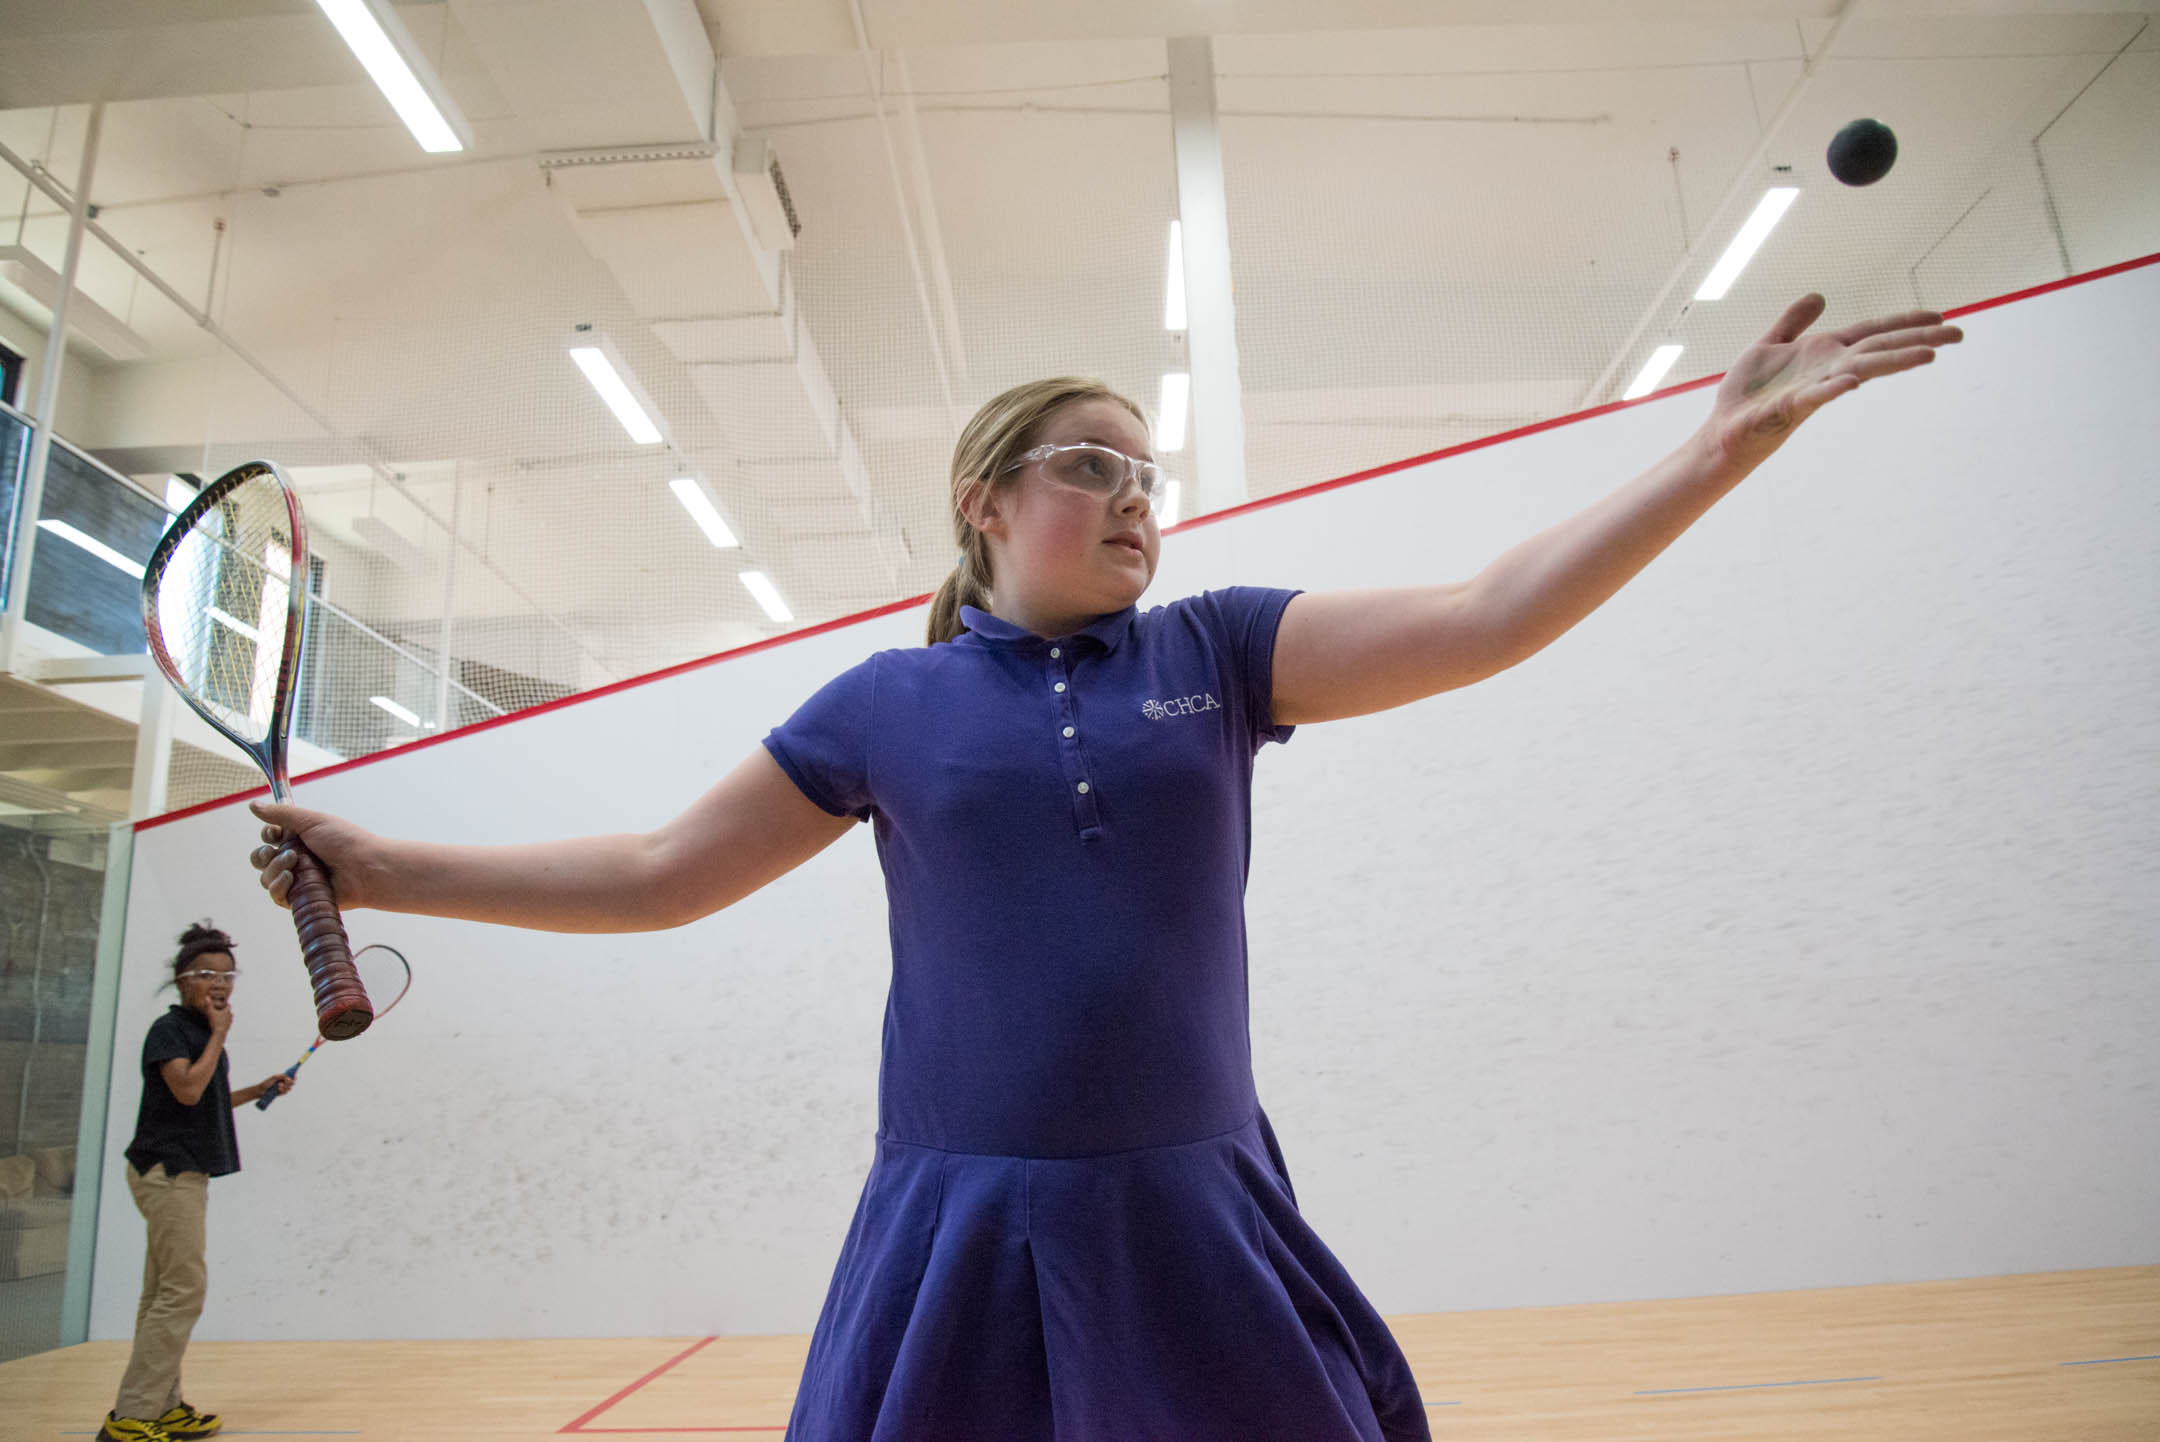 Payton Combs serves the ball in her match with Kiylah Smoot Monday May 8, 2017 at the Cincinnati Squash Academy.